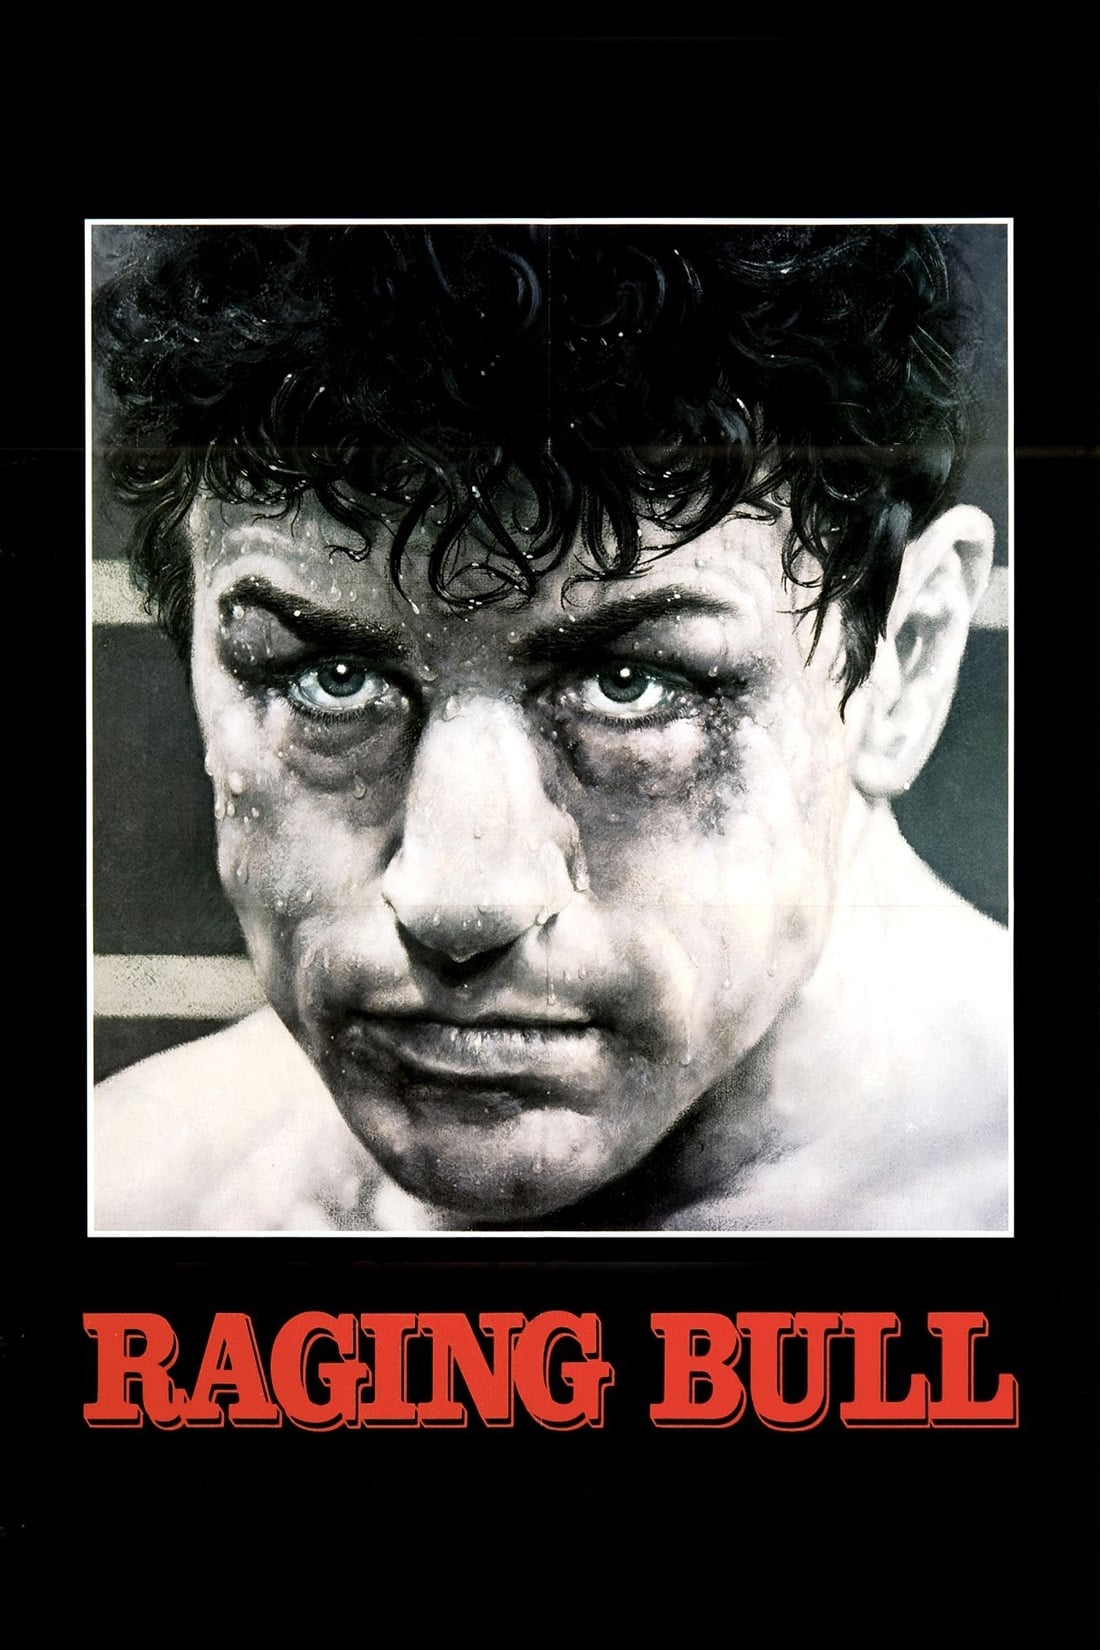 """r aging bull essay Free essay: """"raging bull"""" (1980) is not a so much a film about boxing but more of a story about a psychotically jealous, sexually insecure borderline."""